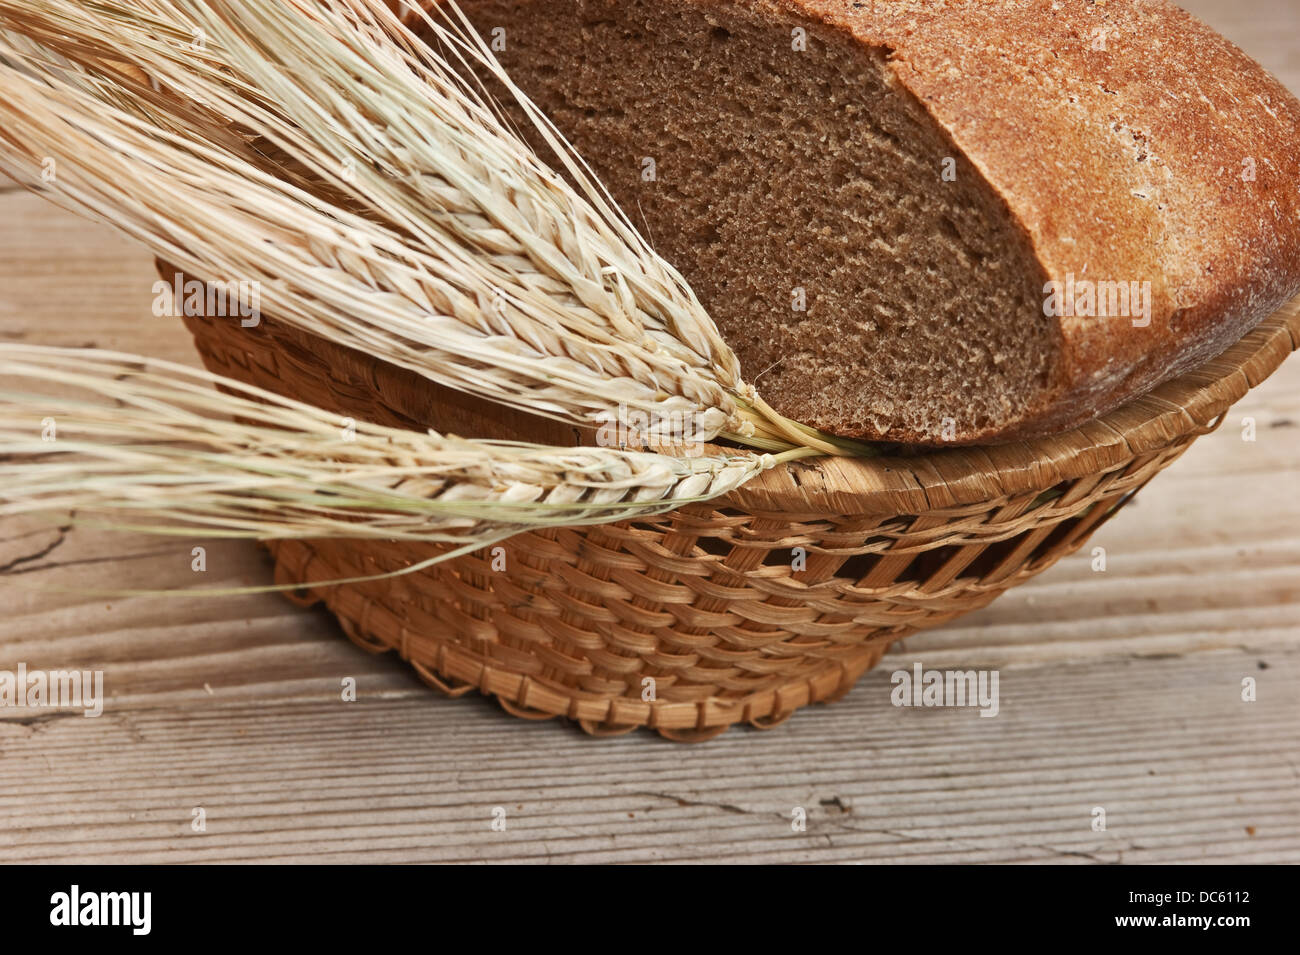 rye bread and ears of corn in the basket - Stock Image